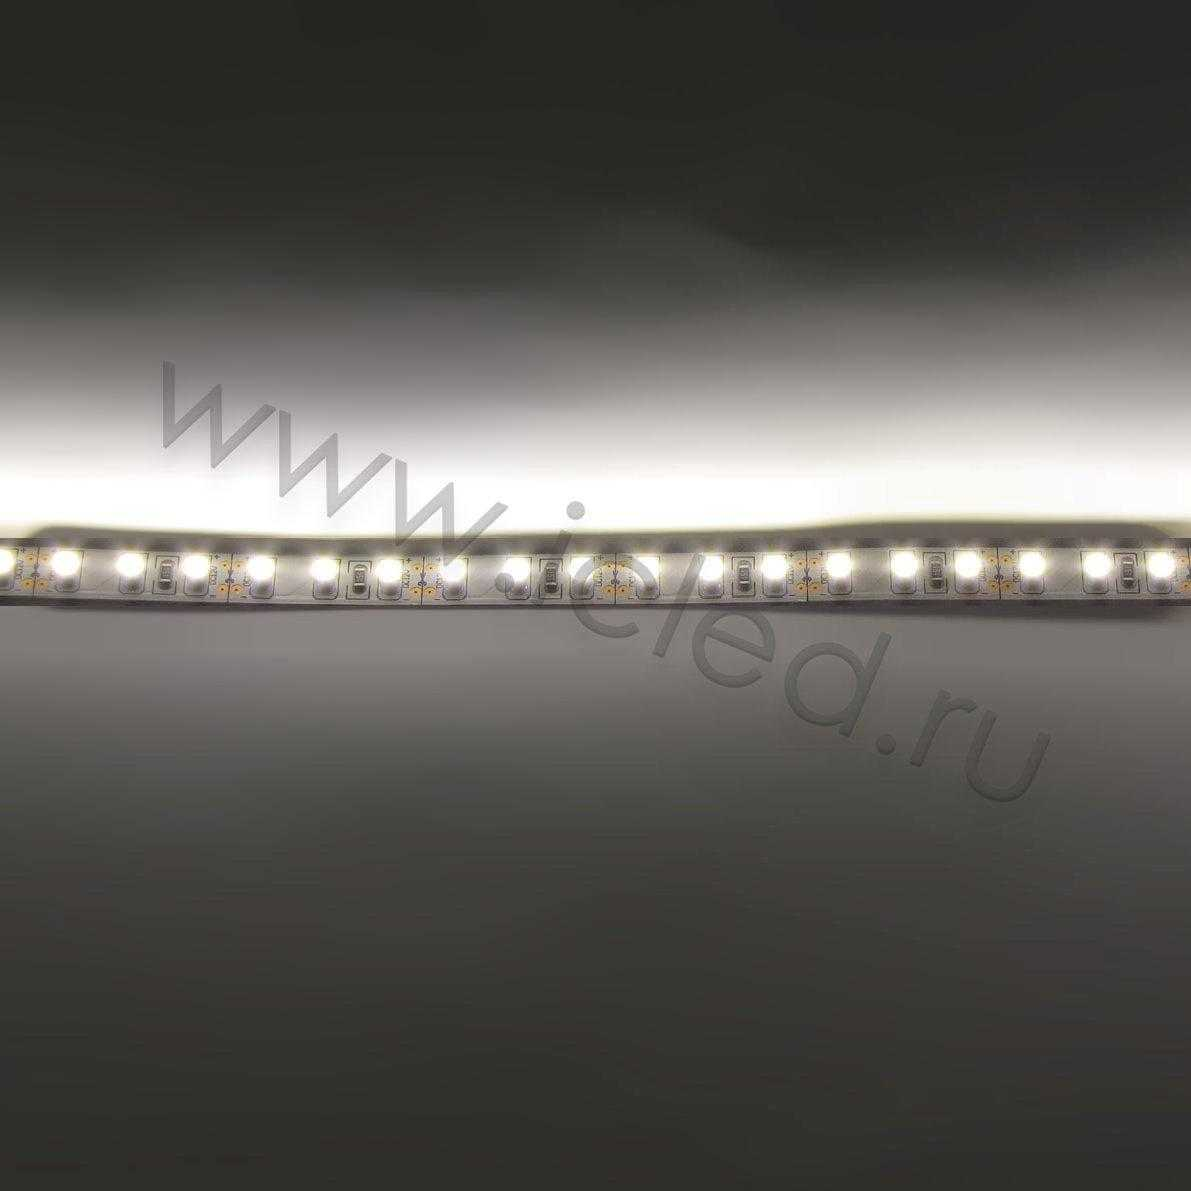 Светодиодная лента Standart PRO class, 3528, 120 led/m, Warm White, 12V, IP33